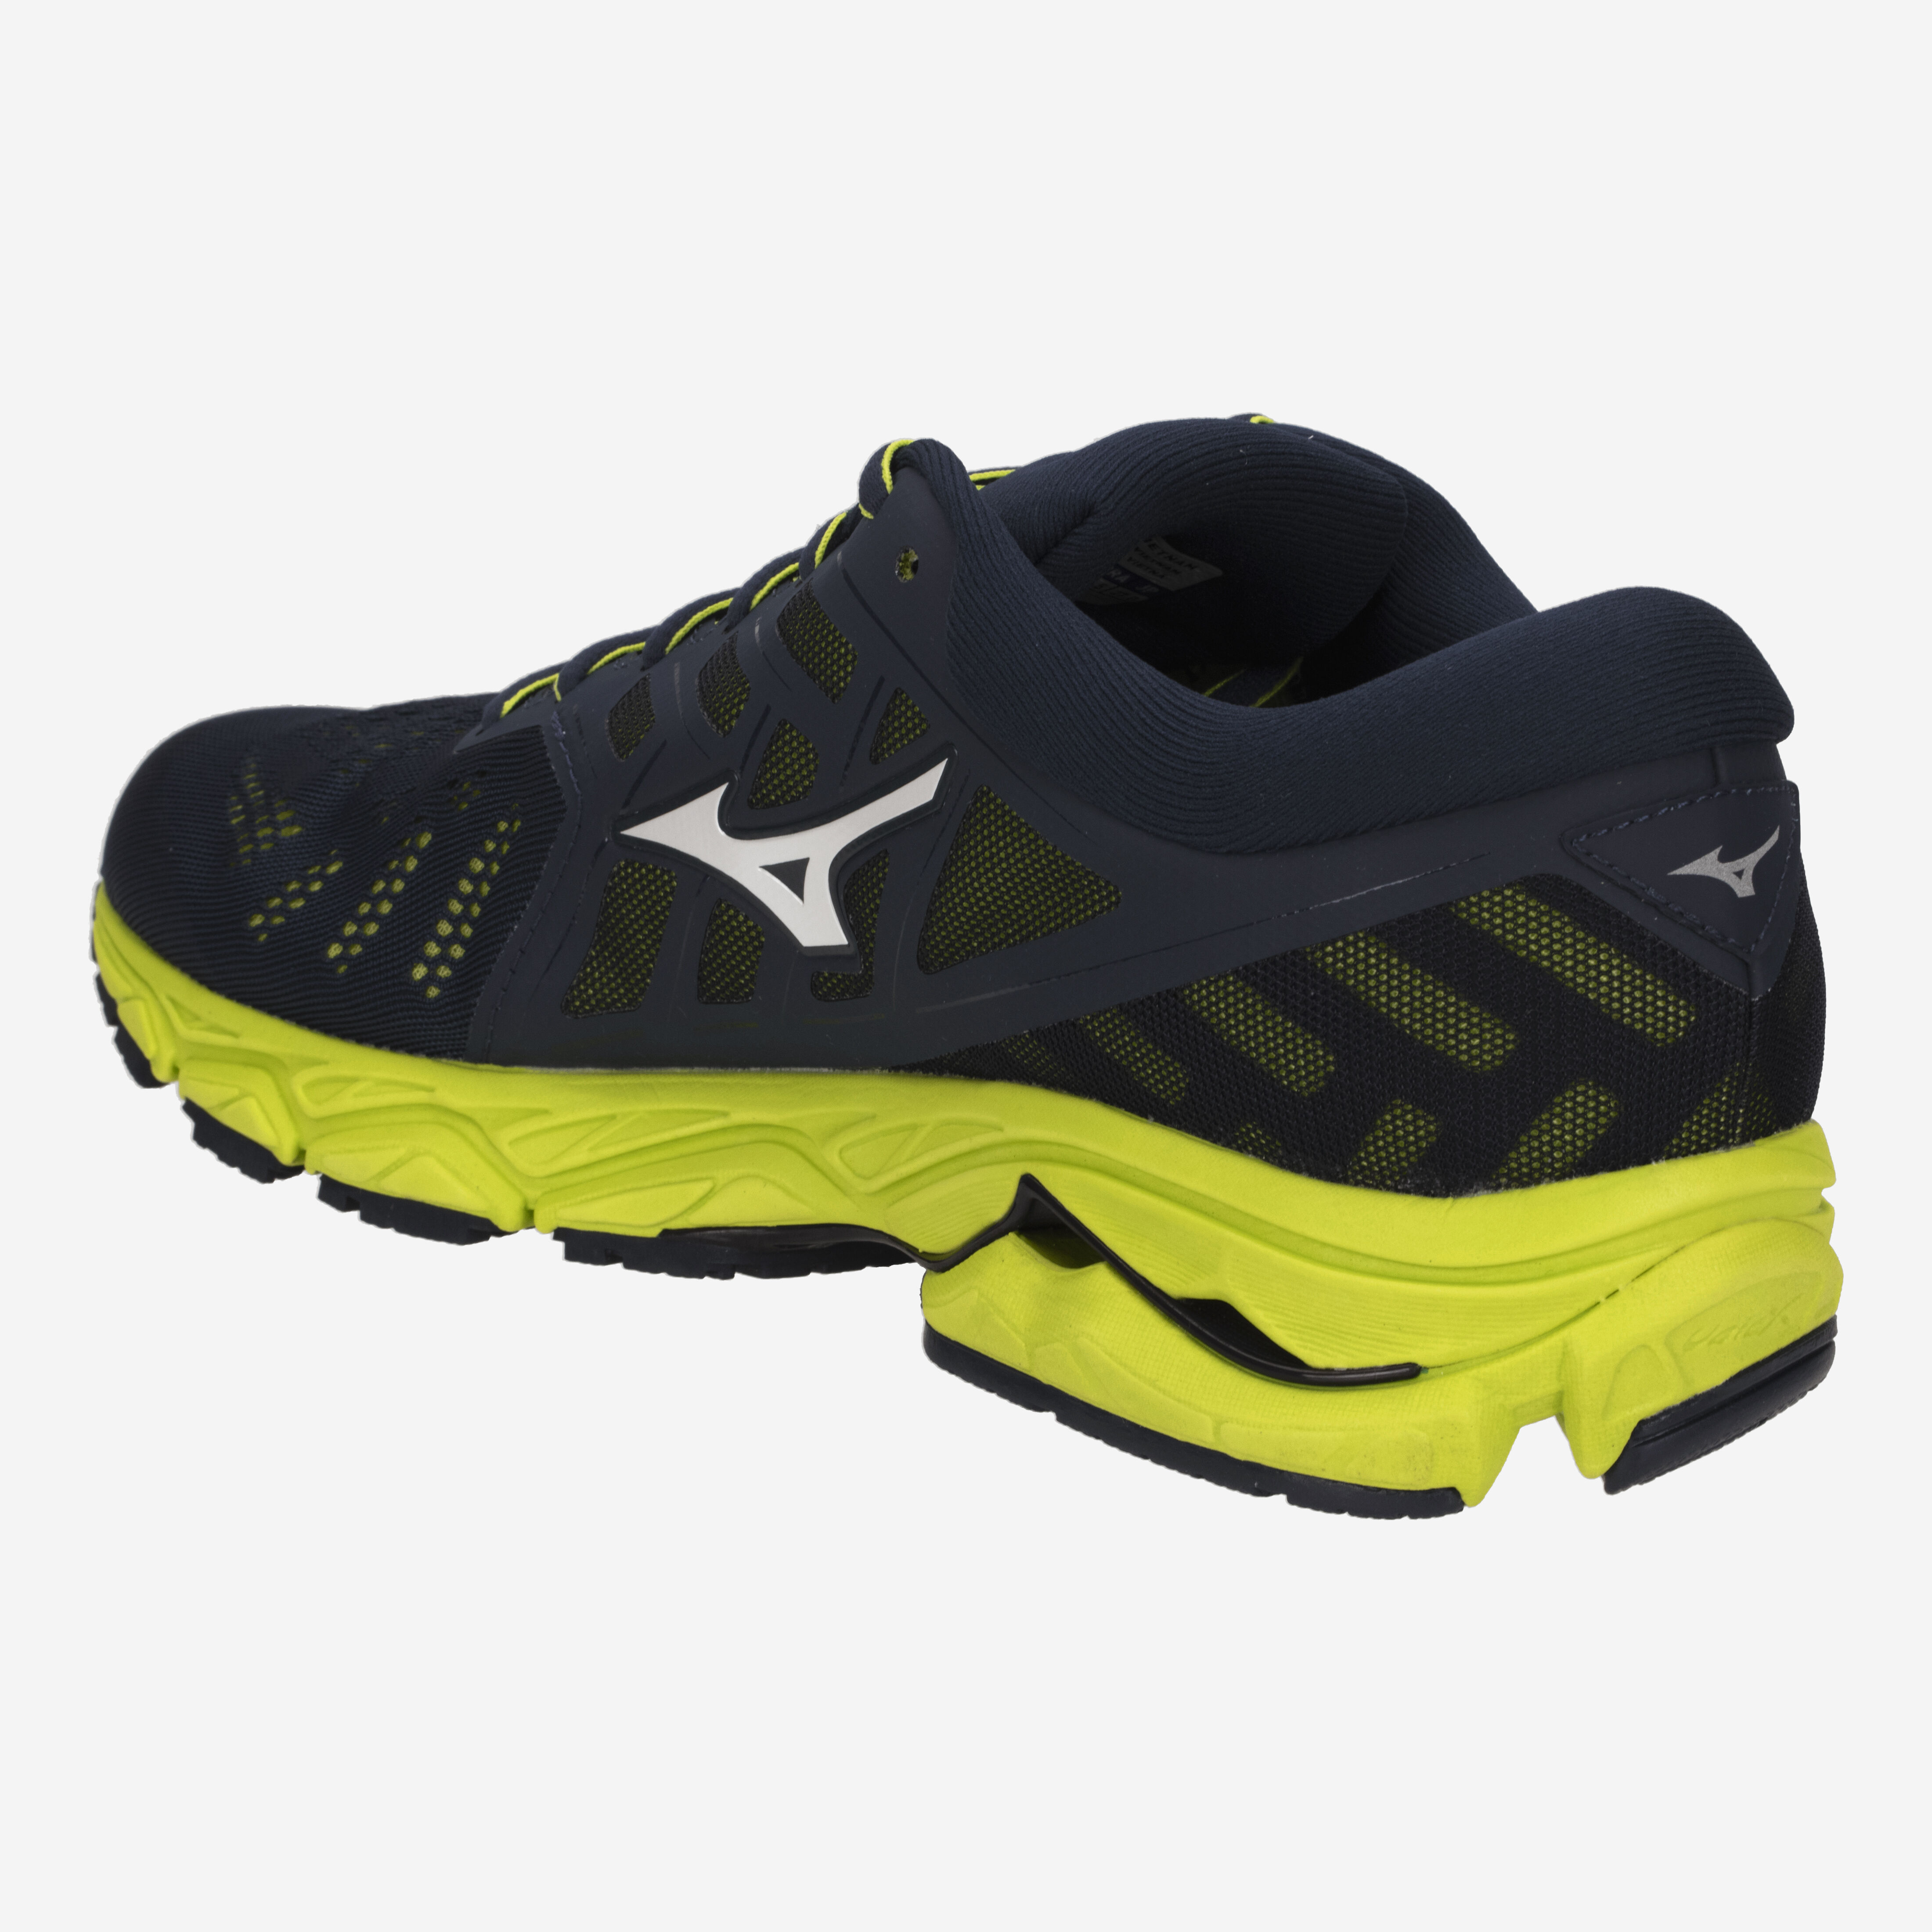 mizuno mens running shoes size 11 youtube pip codes